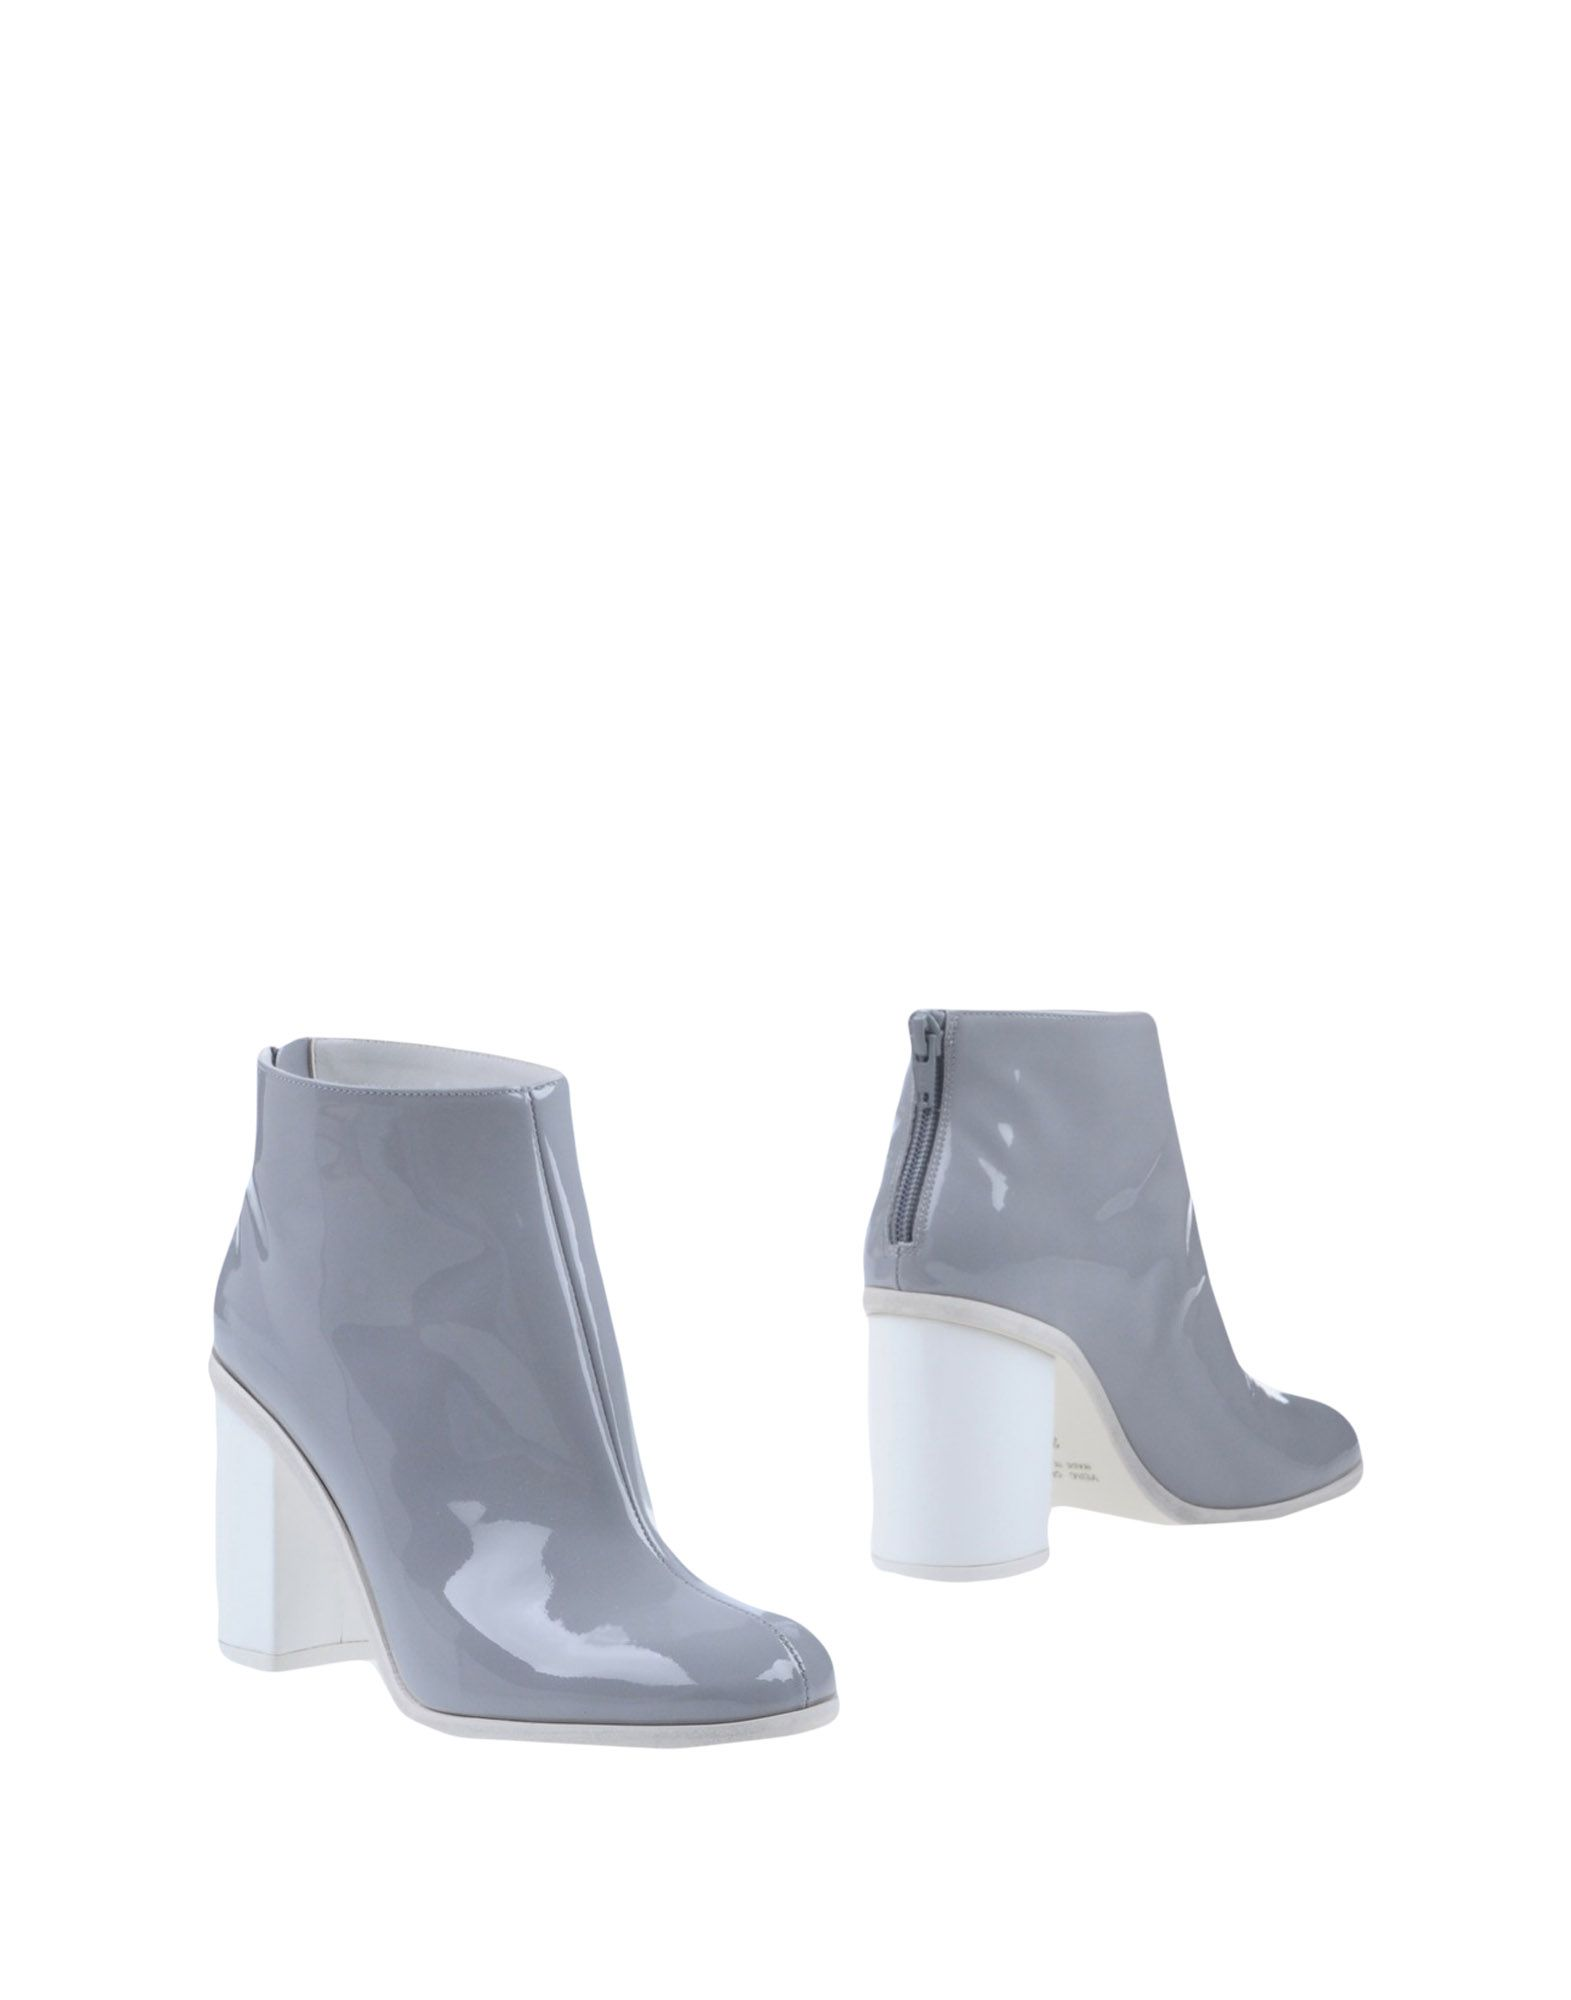 Bottine Marios Femme - Bottines Marios sur